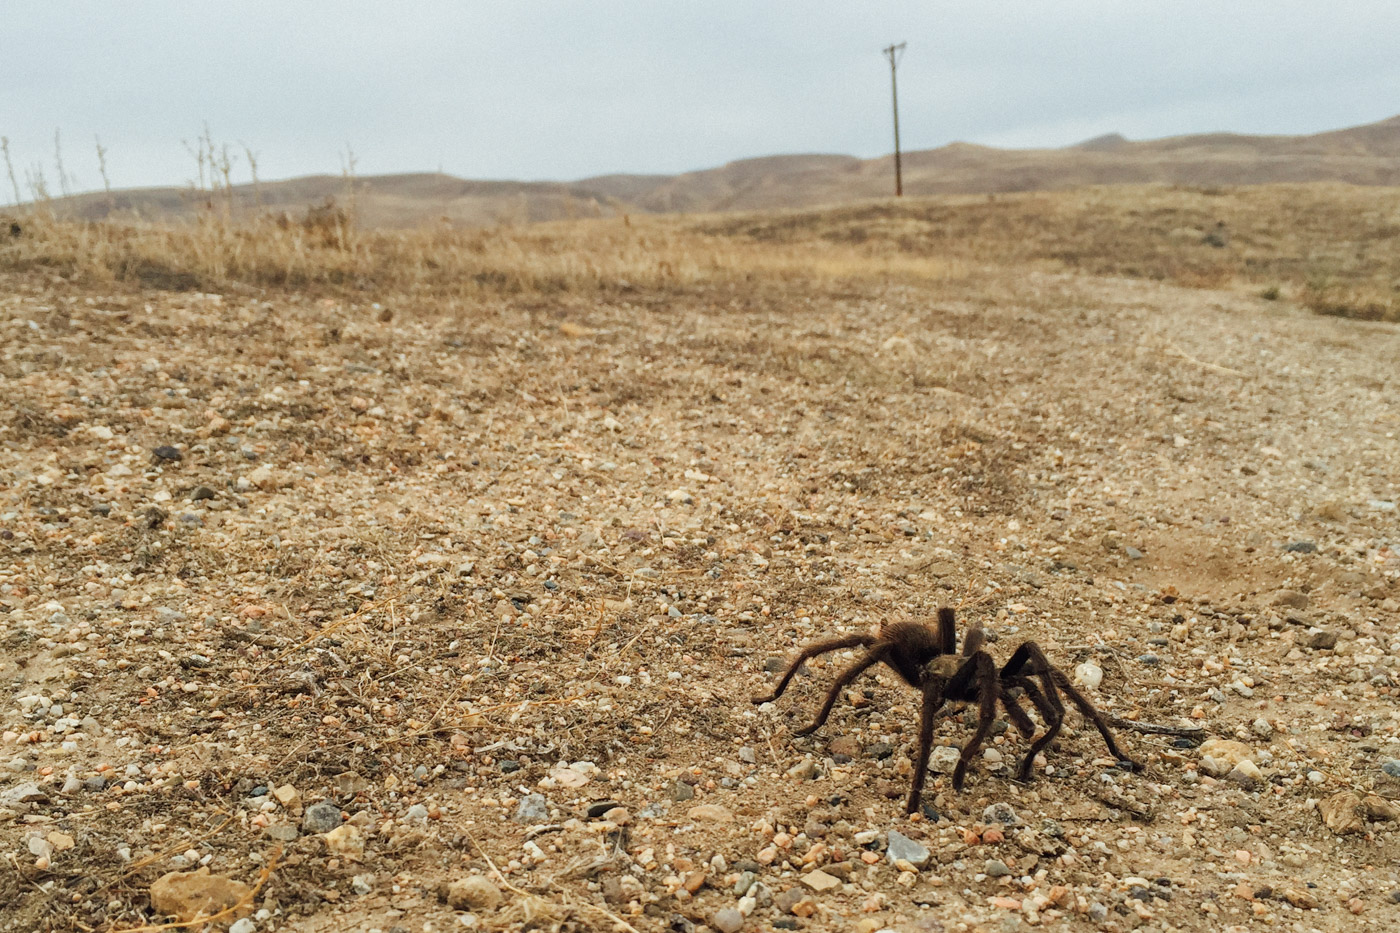 Tarantula mating season - Let's Photo Trip Highway 33